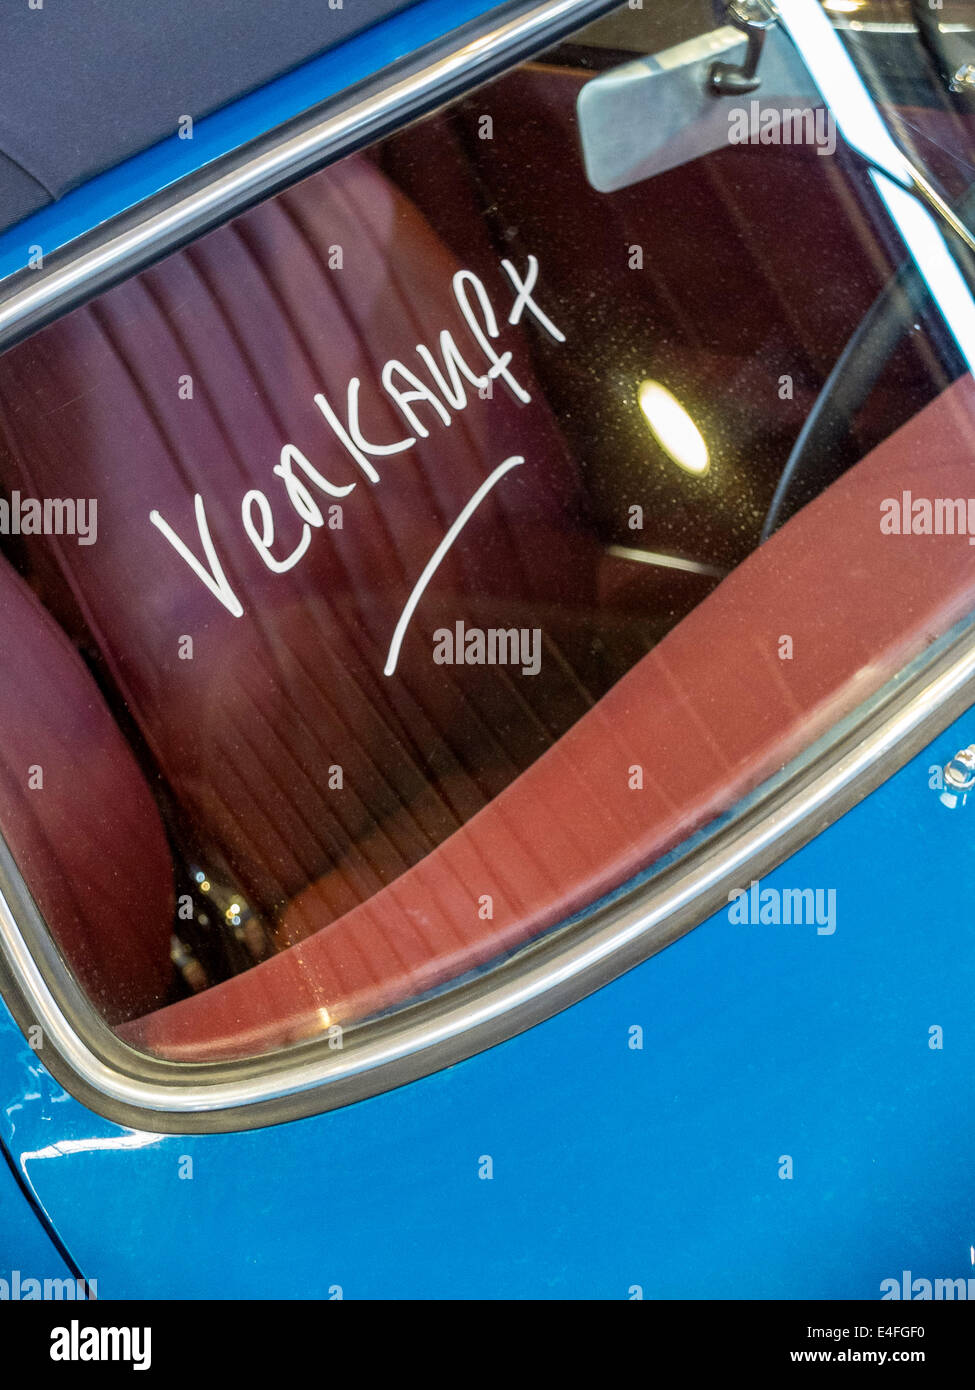 "Classic Car Porsche 356 ""verkauft"" (""sold"" german) Stock Photo"